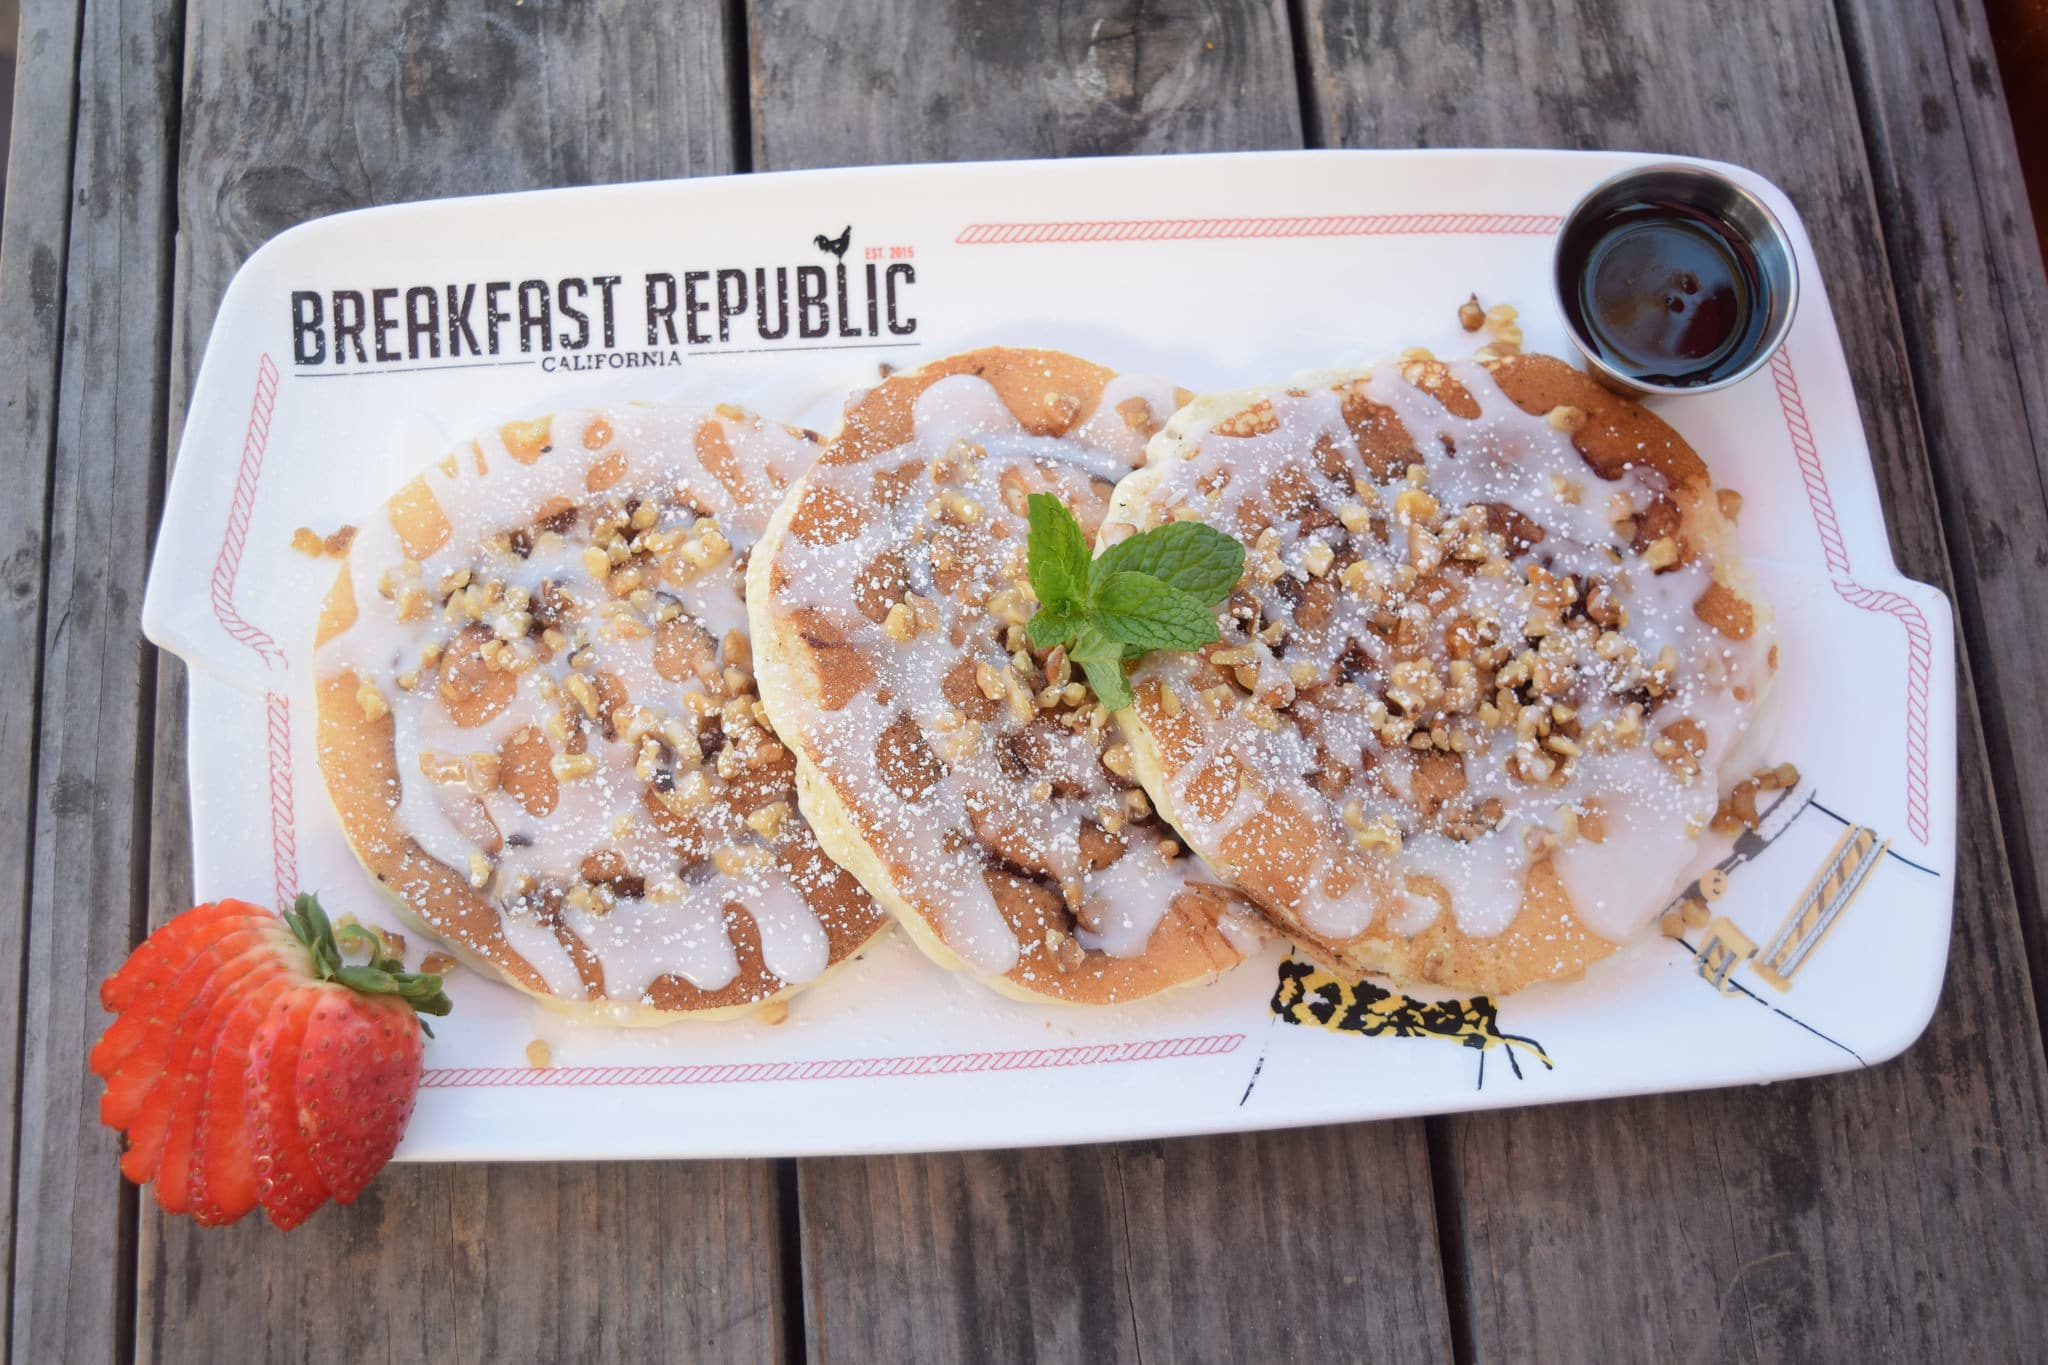 Breakfast Republic's Cinnamon Roll Pancake Recipe